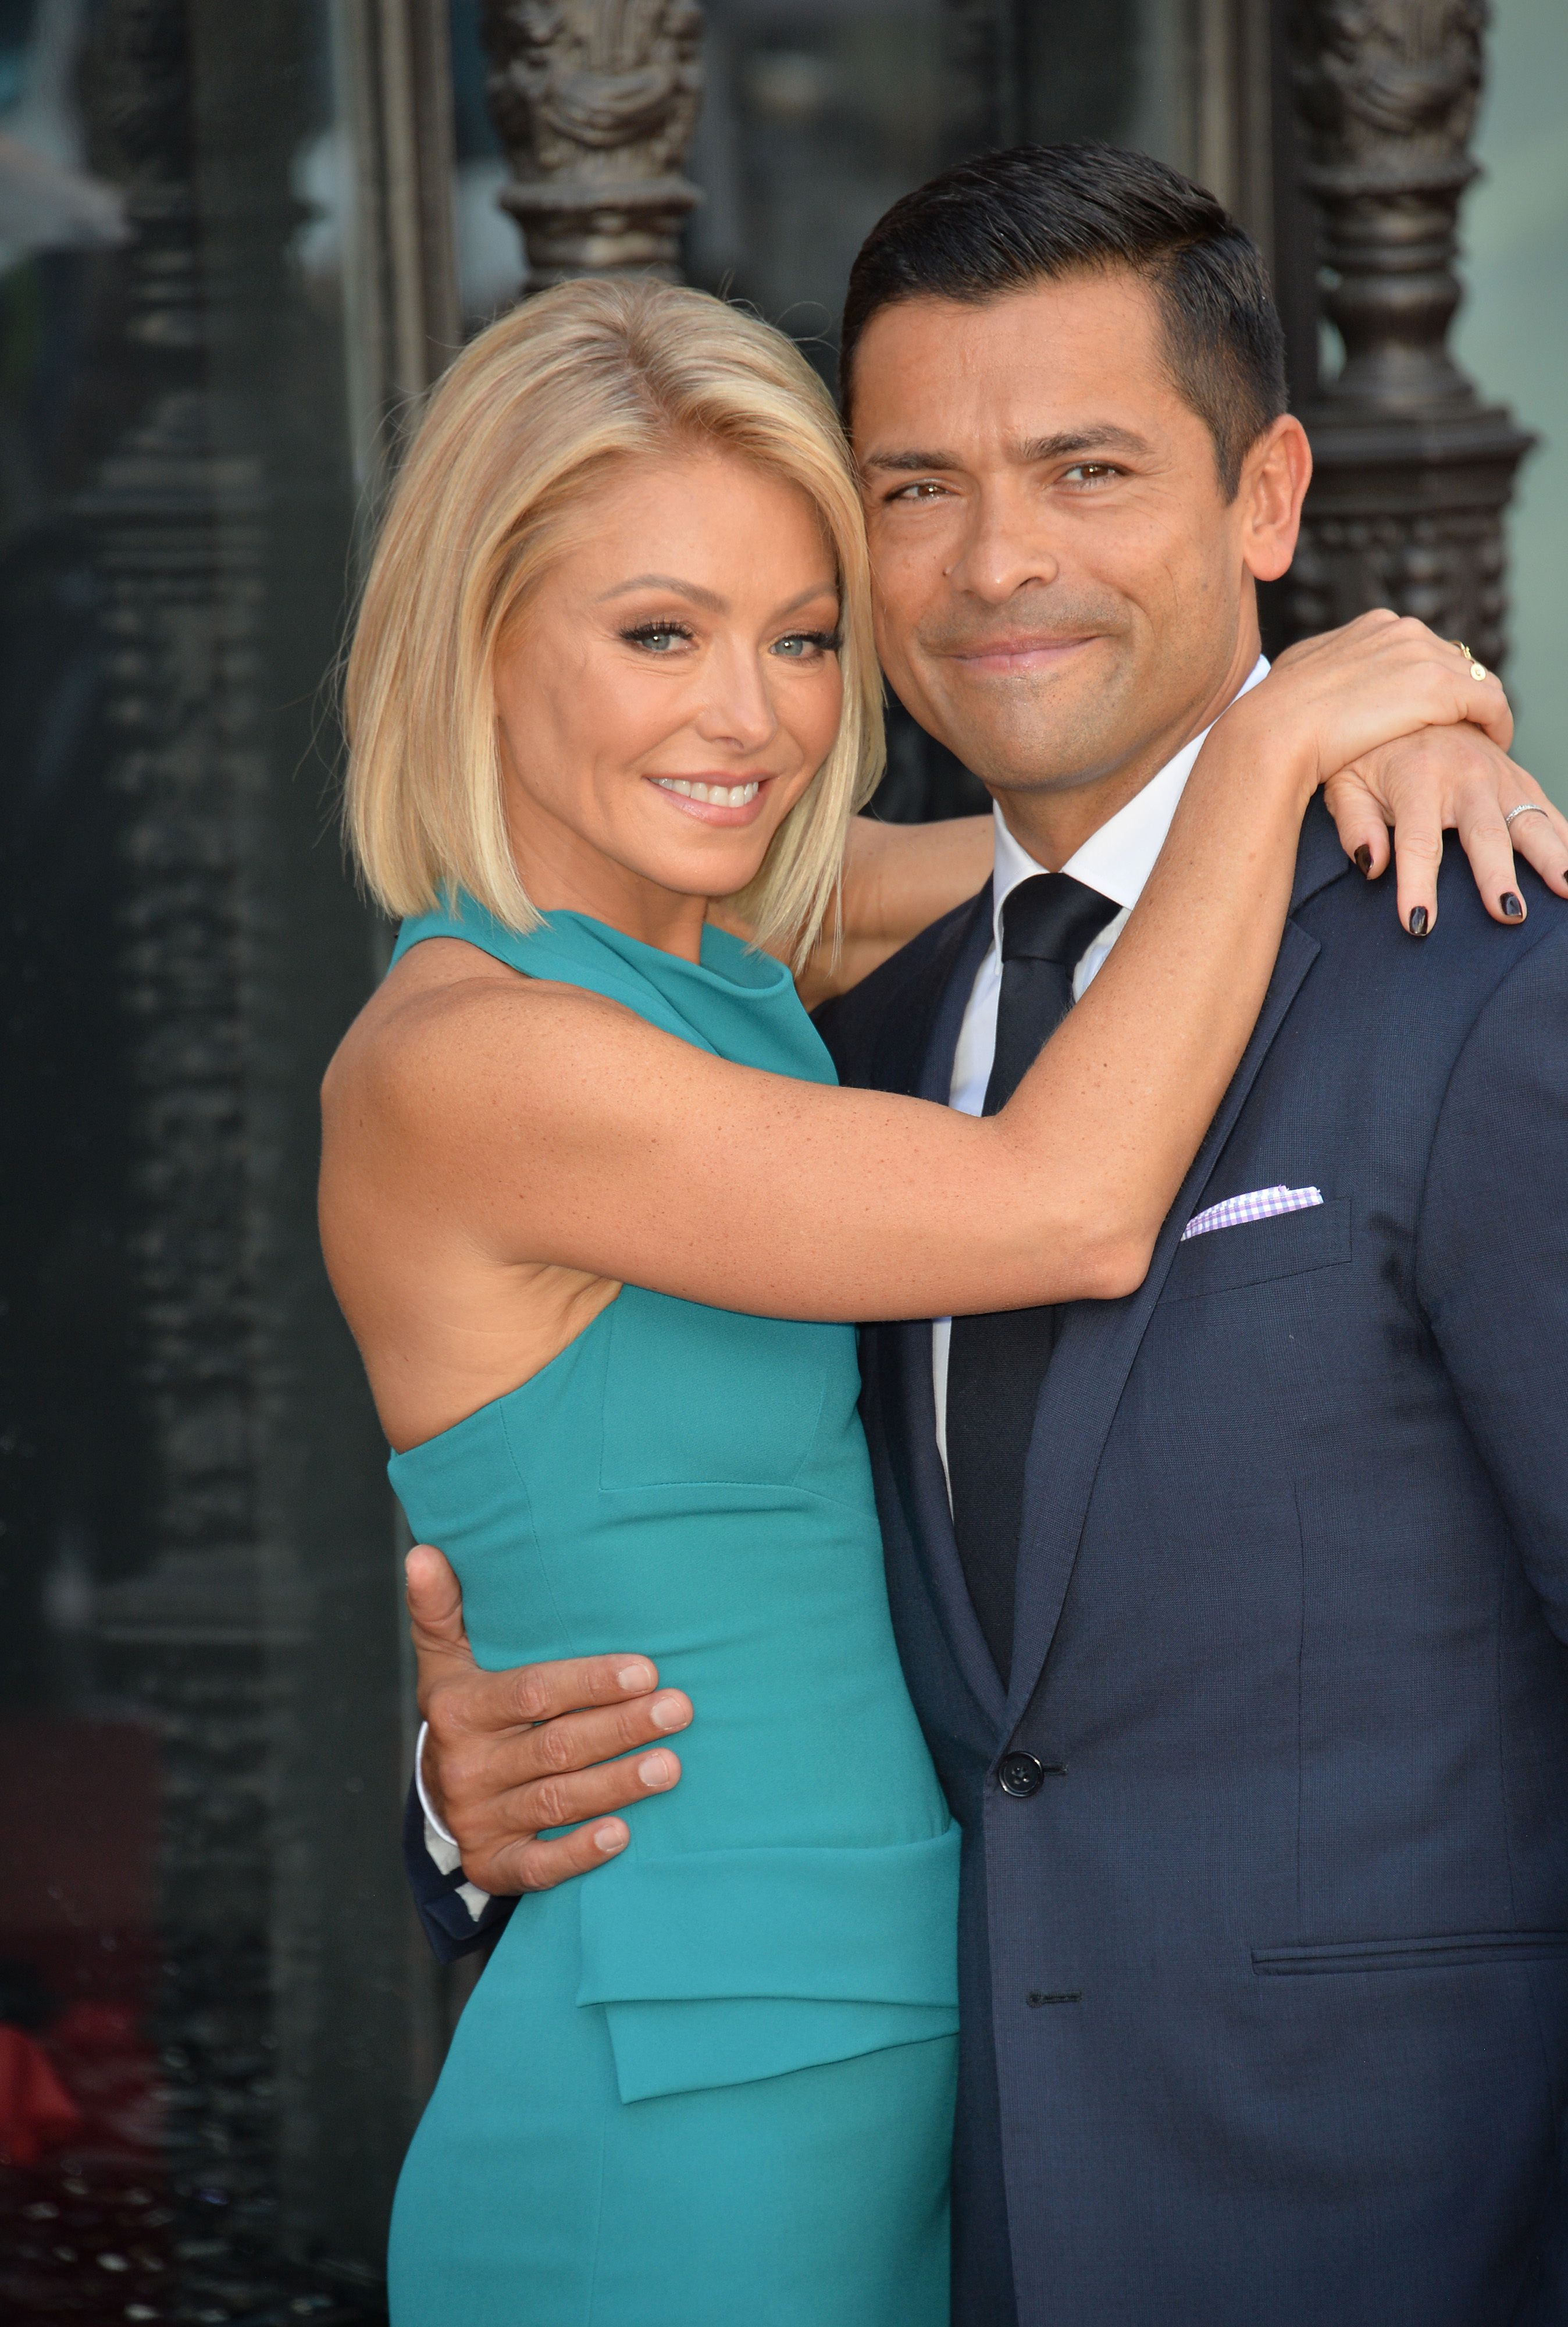 Kelly Ripa smiling with her usband